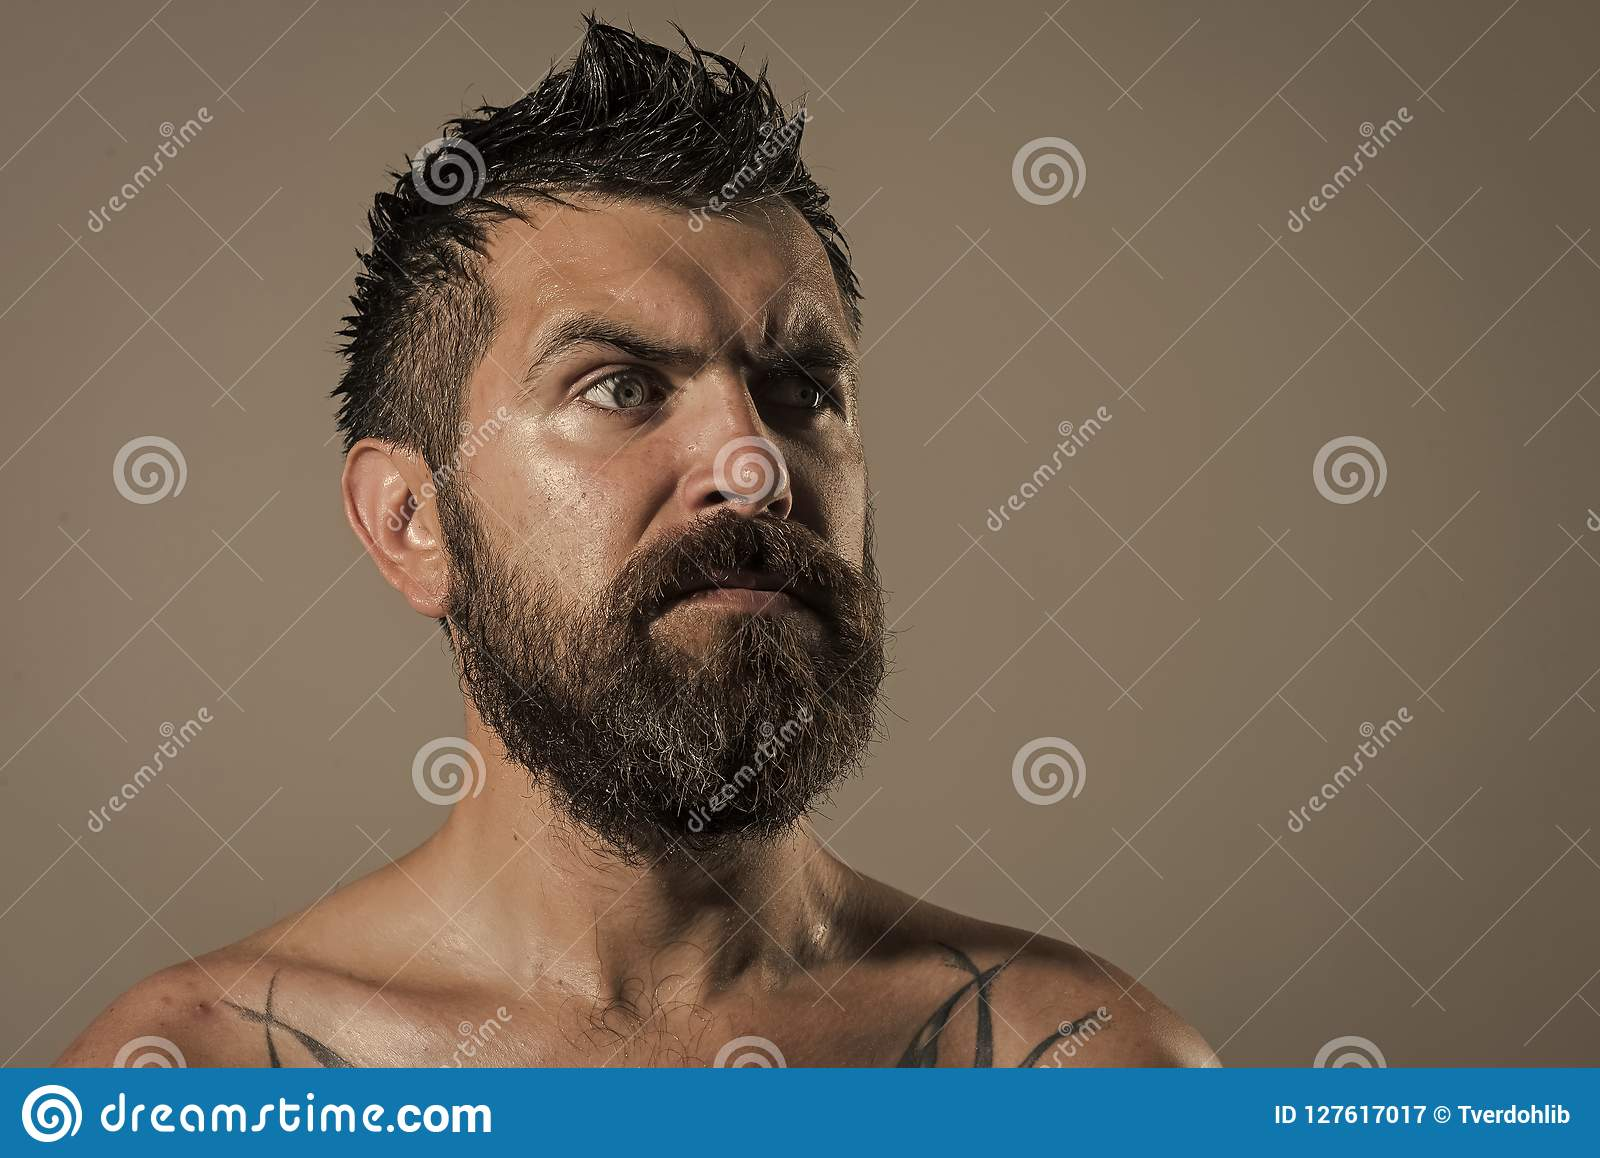 Serious face guy naked pic 862